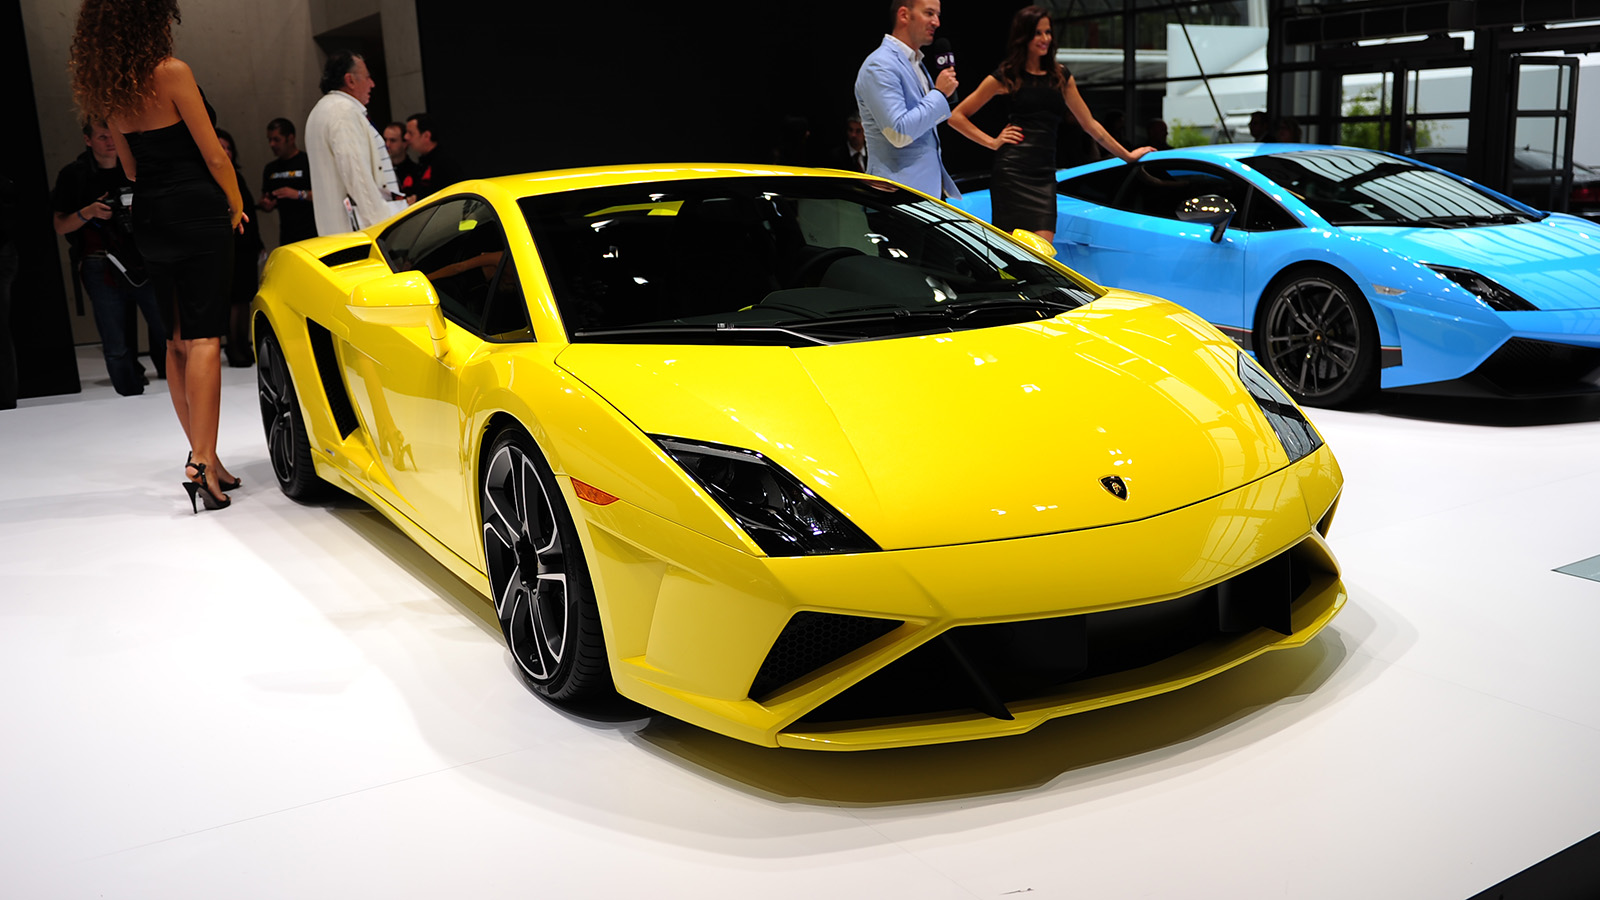 2018 Lamborghini Gallardo LP560 4 photo - 1